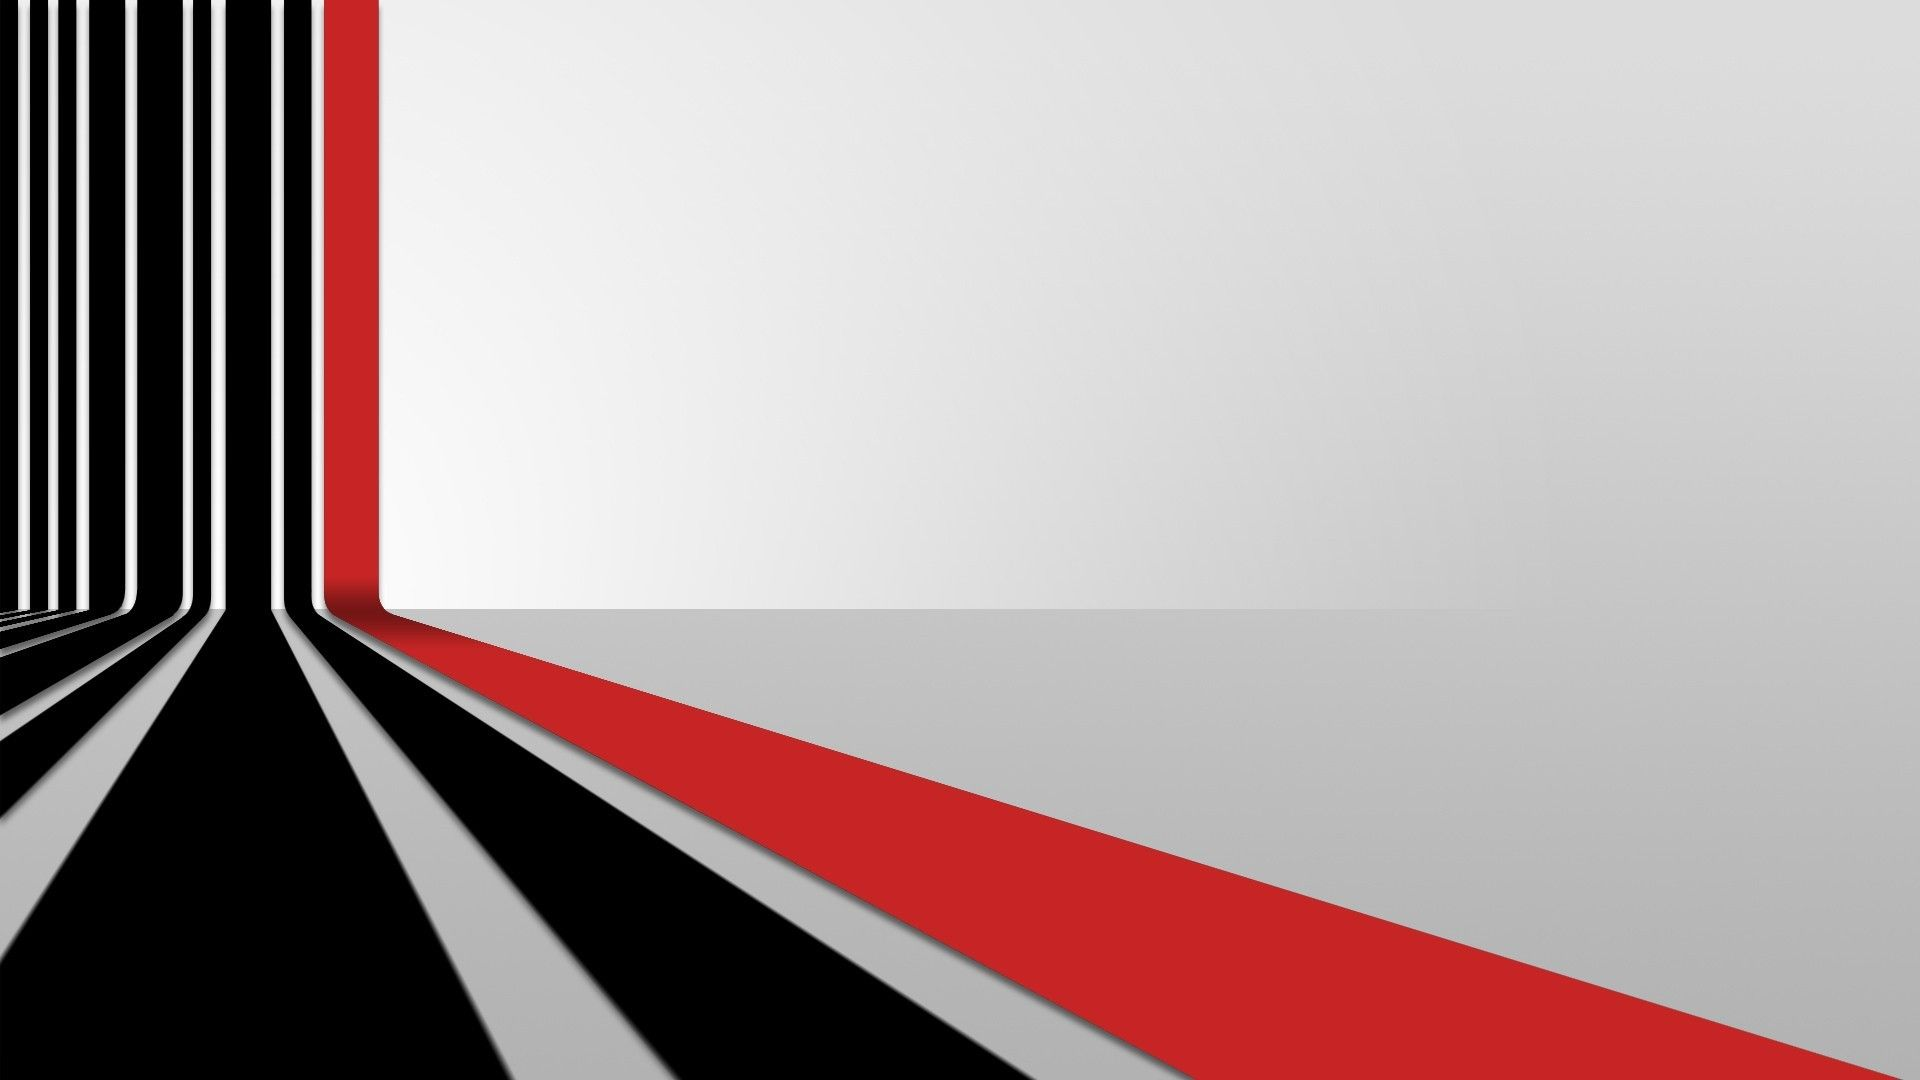 Simple Background Artwork Lines Abstract White Red Black Minimalism Selective Coloring Digital Art Abstract Abstract Wallpaper Red And White Wallpaper